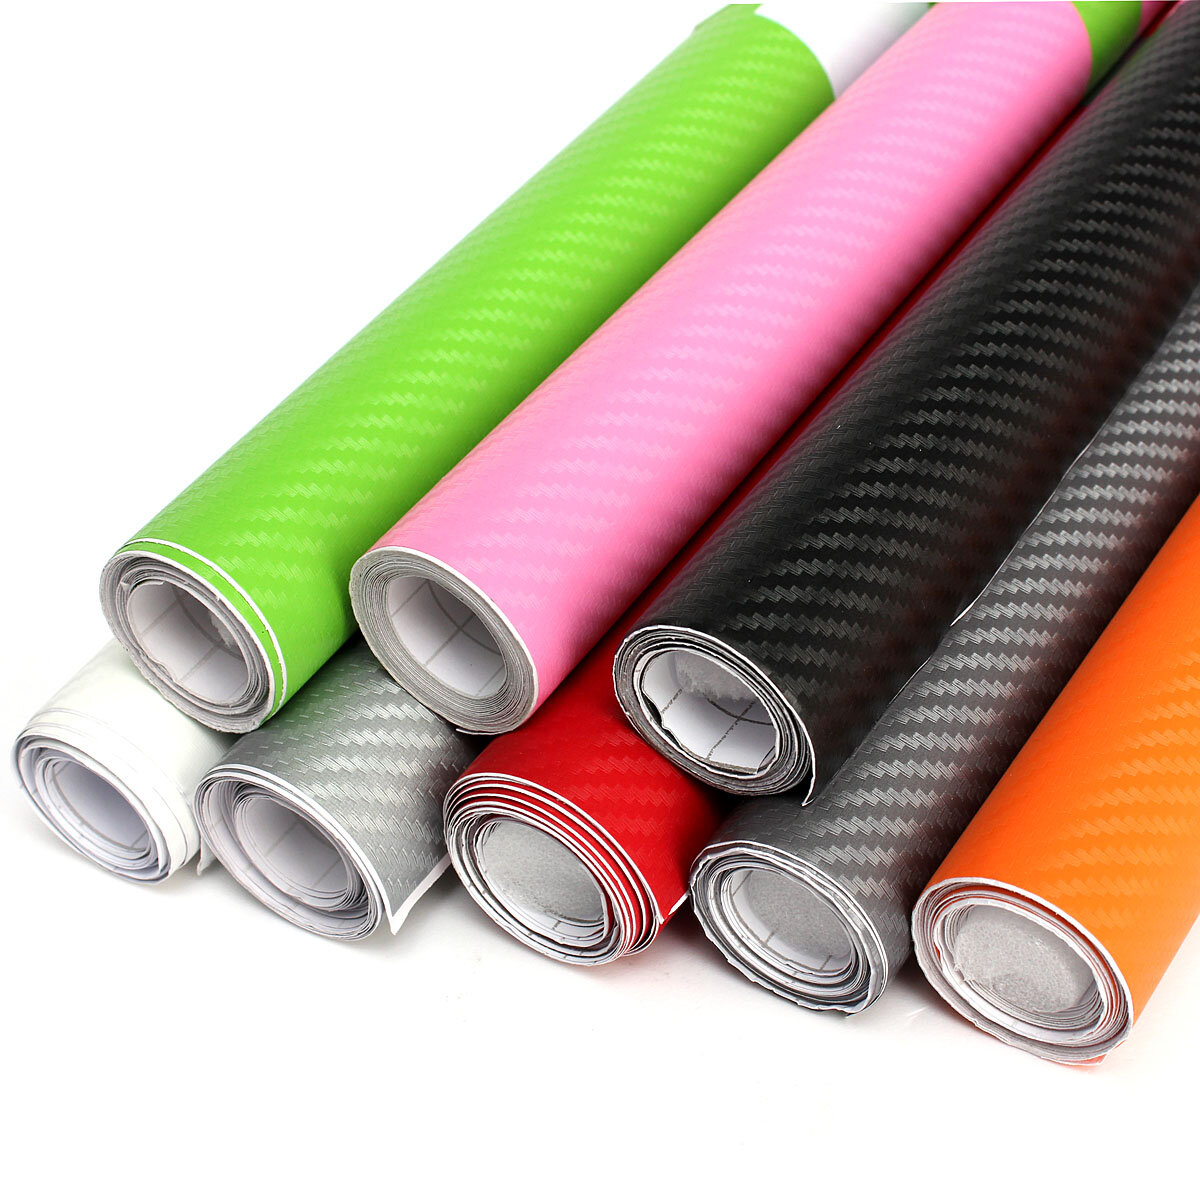 200x40cm DIY Carbon Fiber Vinyl Wrap Roll Film Sticker Car Decal Sheet